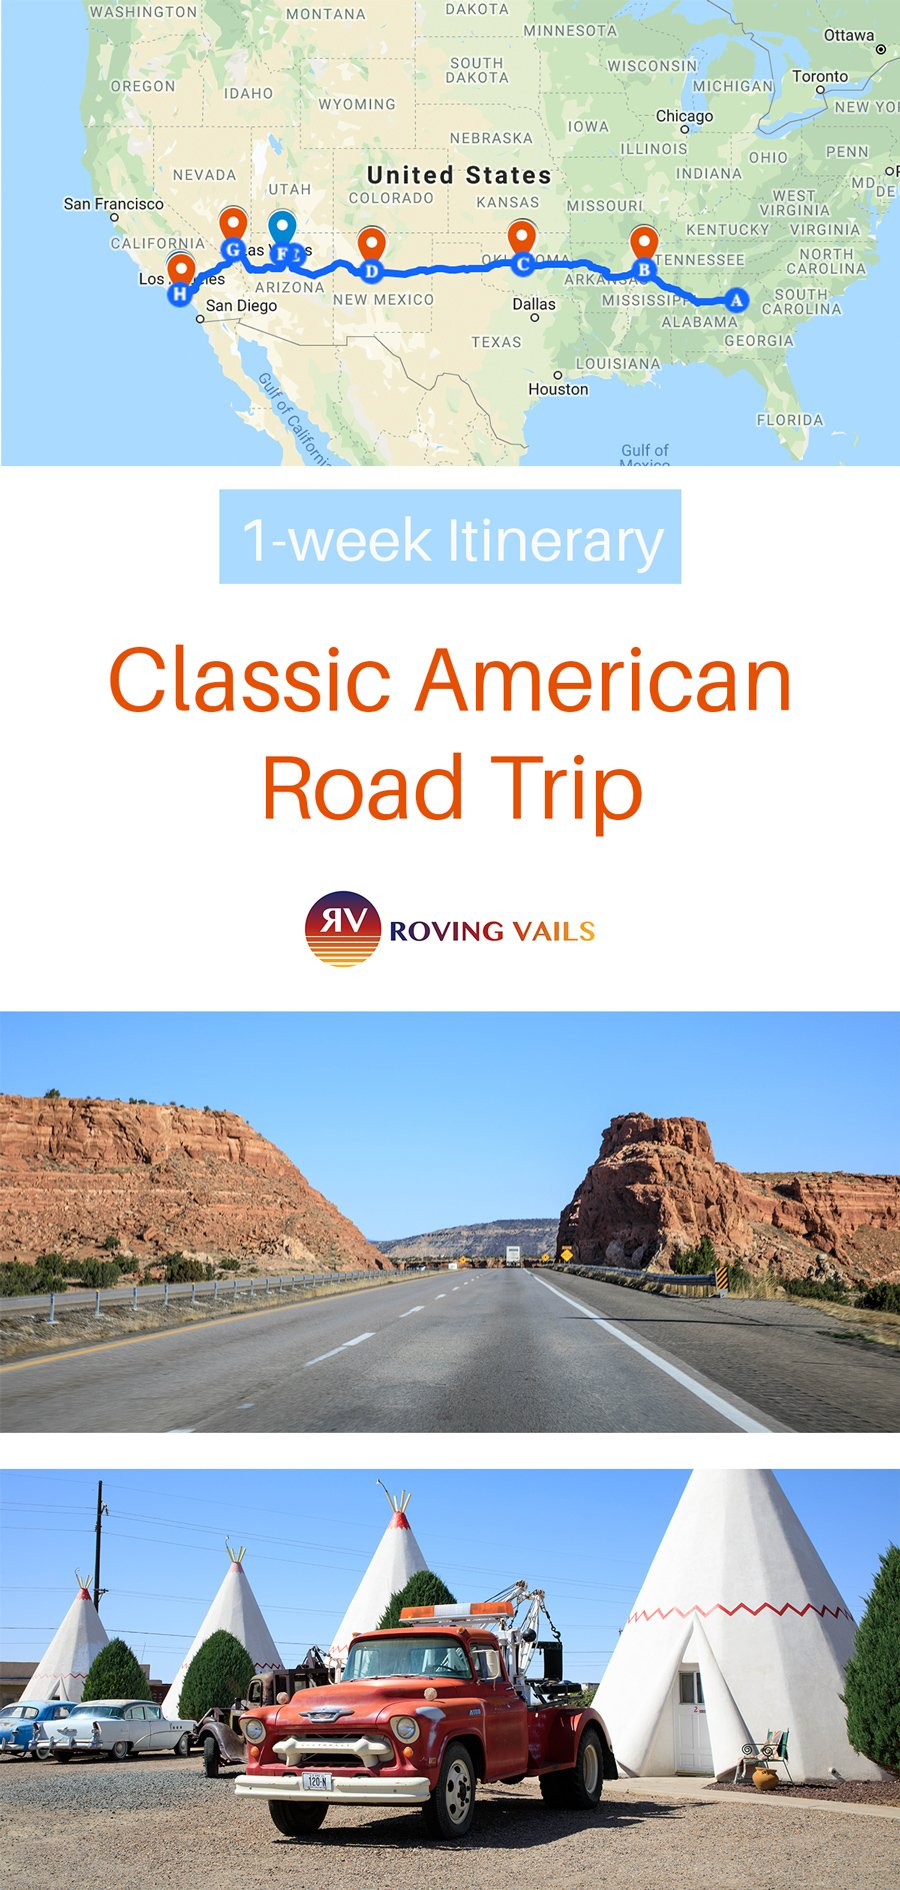 A one week classic American road trip on Interstate 40!